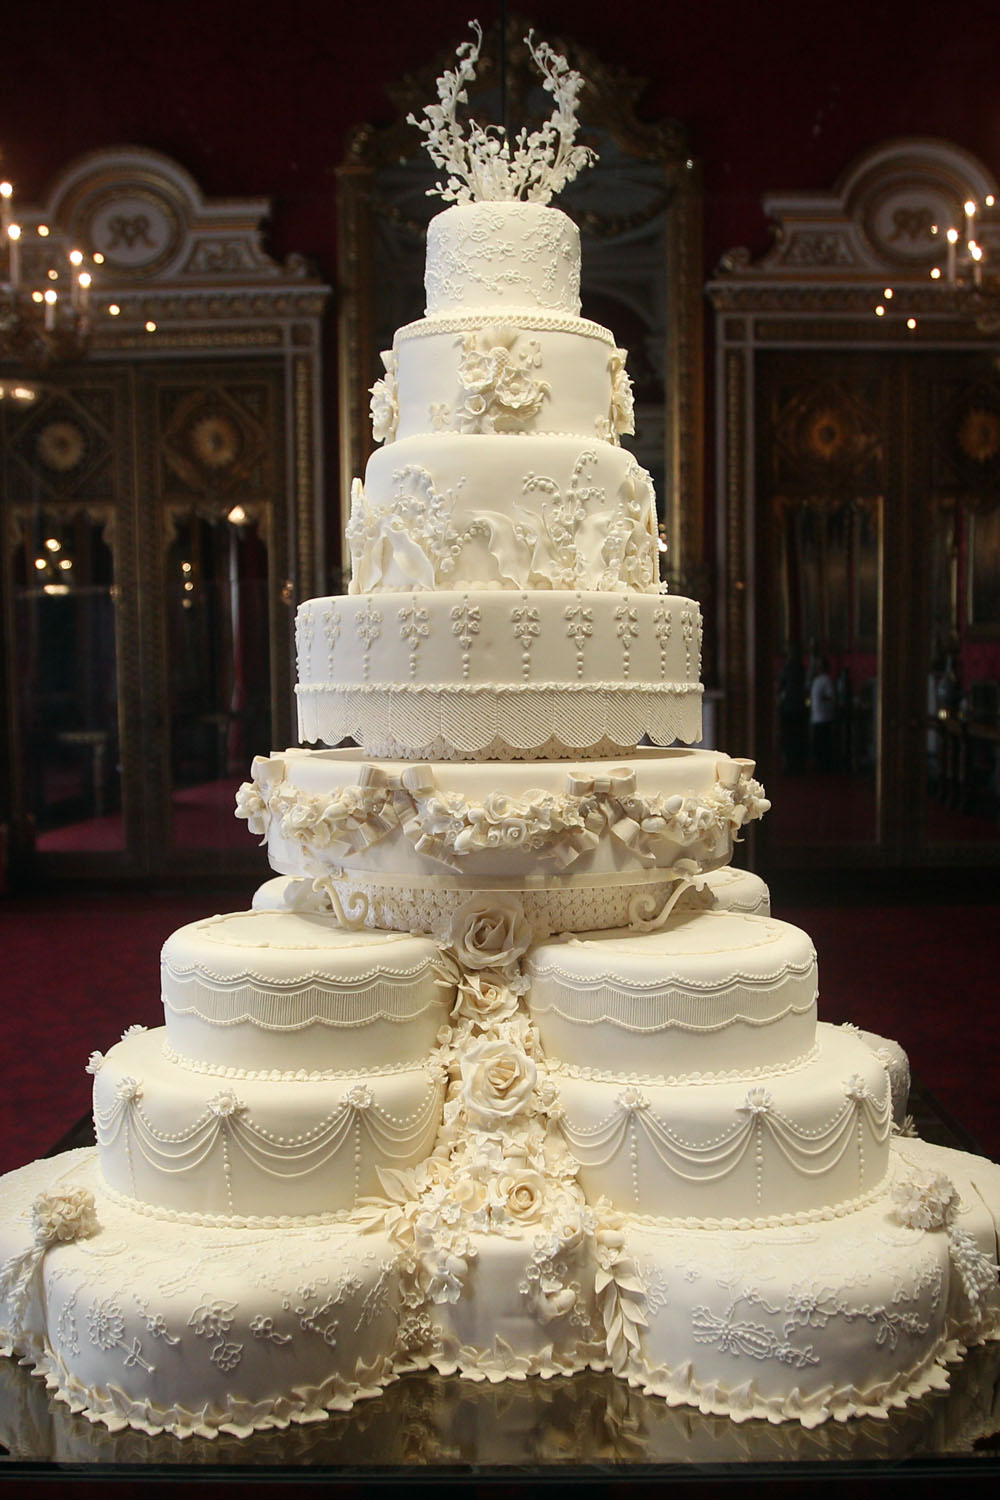 Design Your Own Wedding Cake Uk : Celebrity Wedding Cakes: Pictures To Inspire Your Own ...